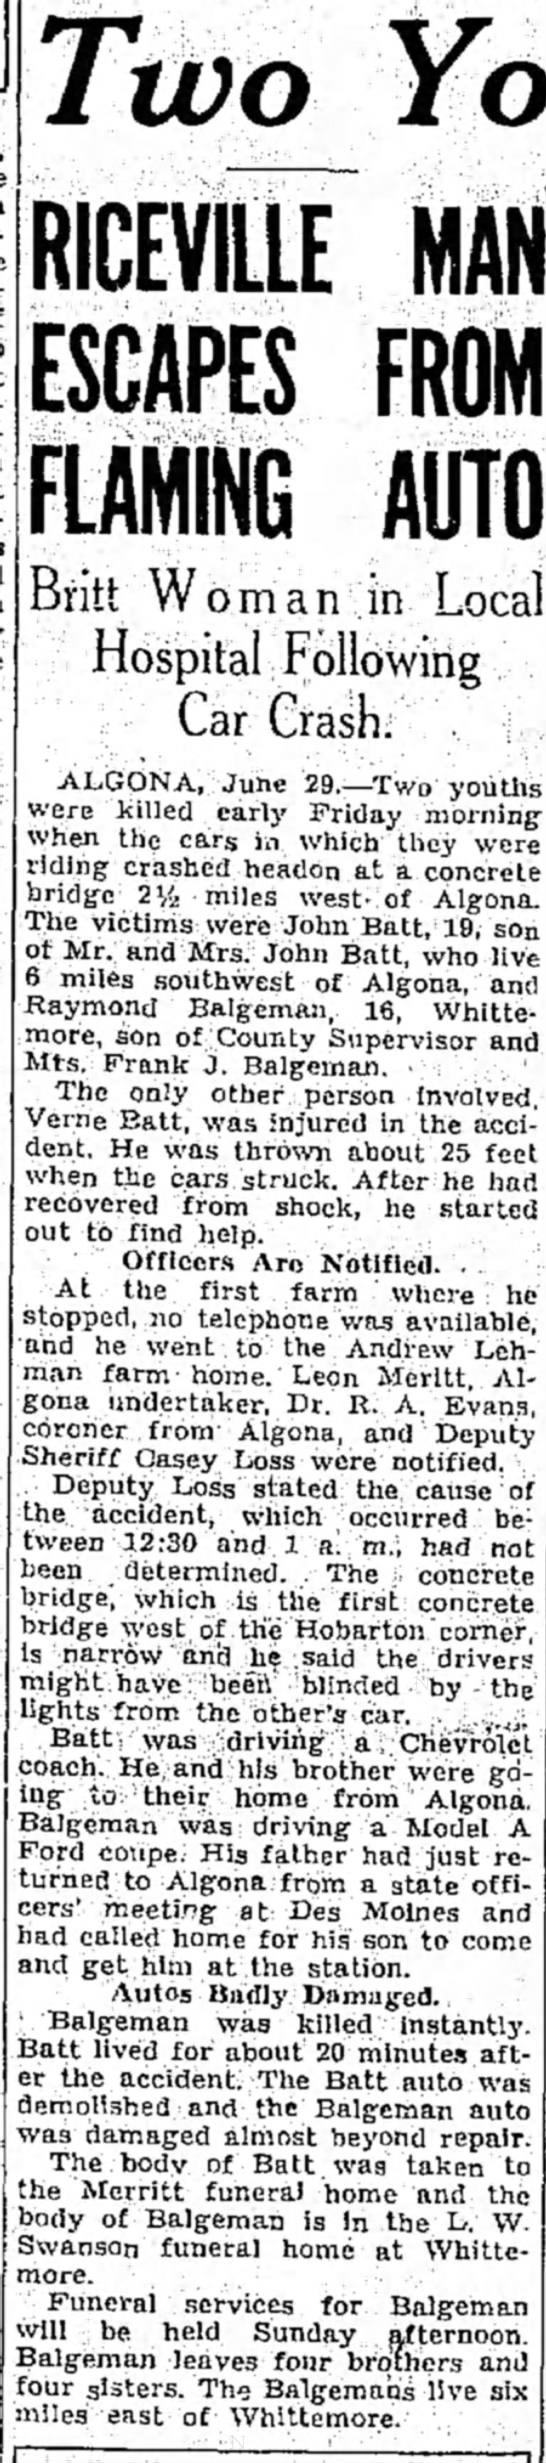 Raymond Balgeman, son of Frank Balgeman, killed, 1934 -